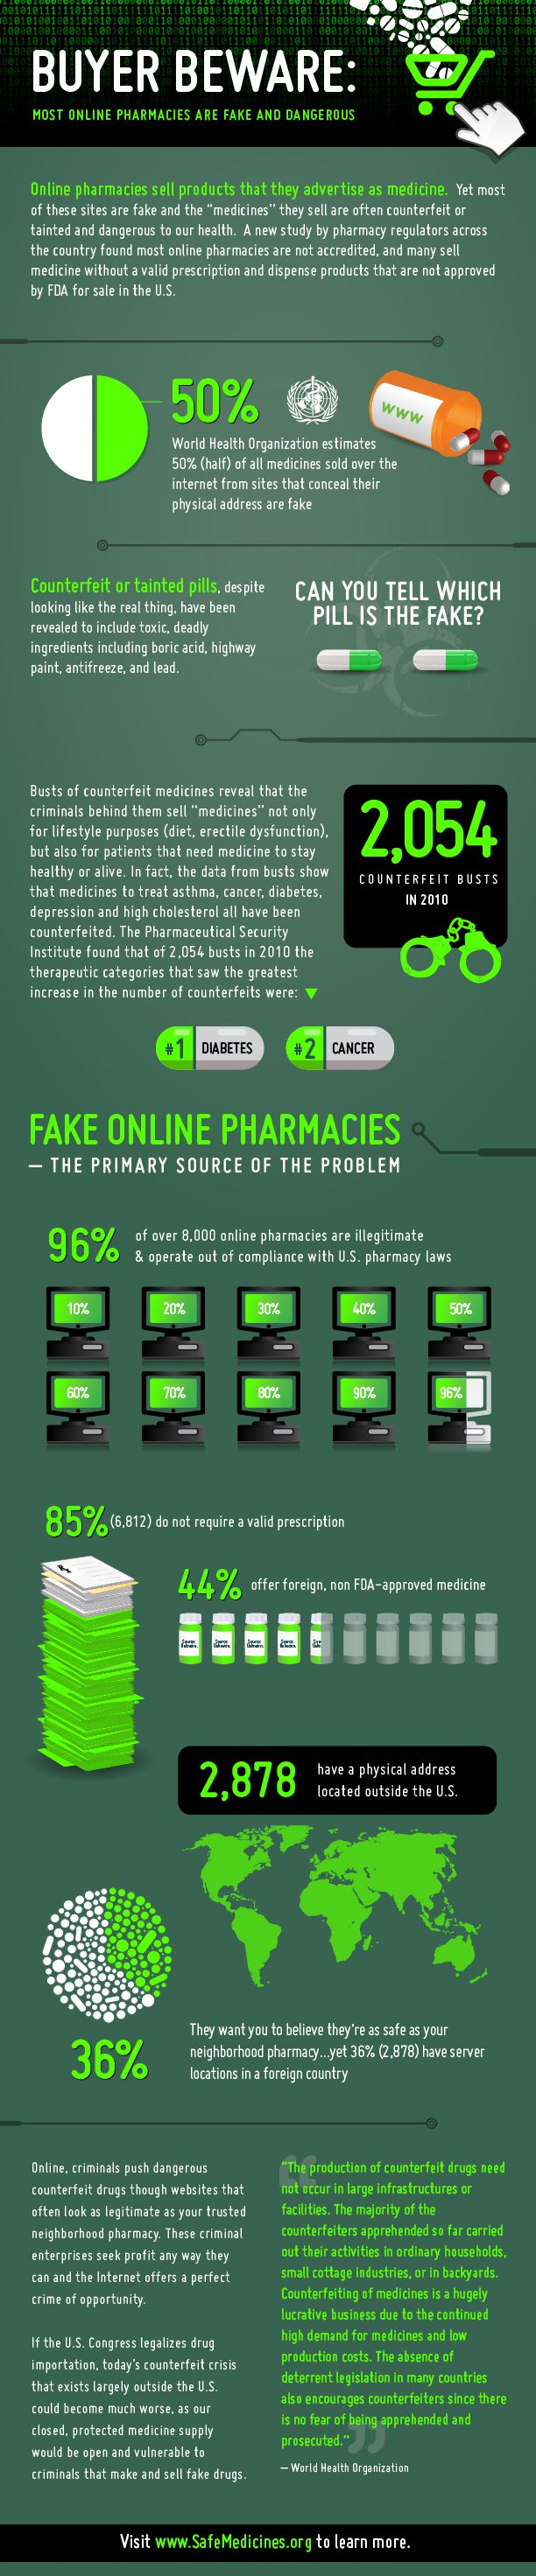 16 best Counterfeit Drugs images on Pinterest | Drugs, Medical and ...